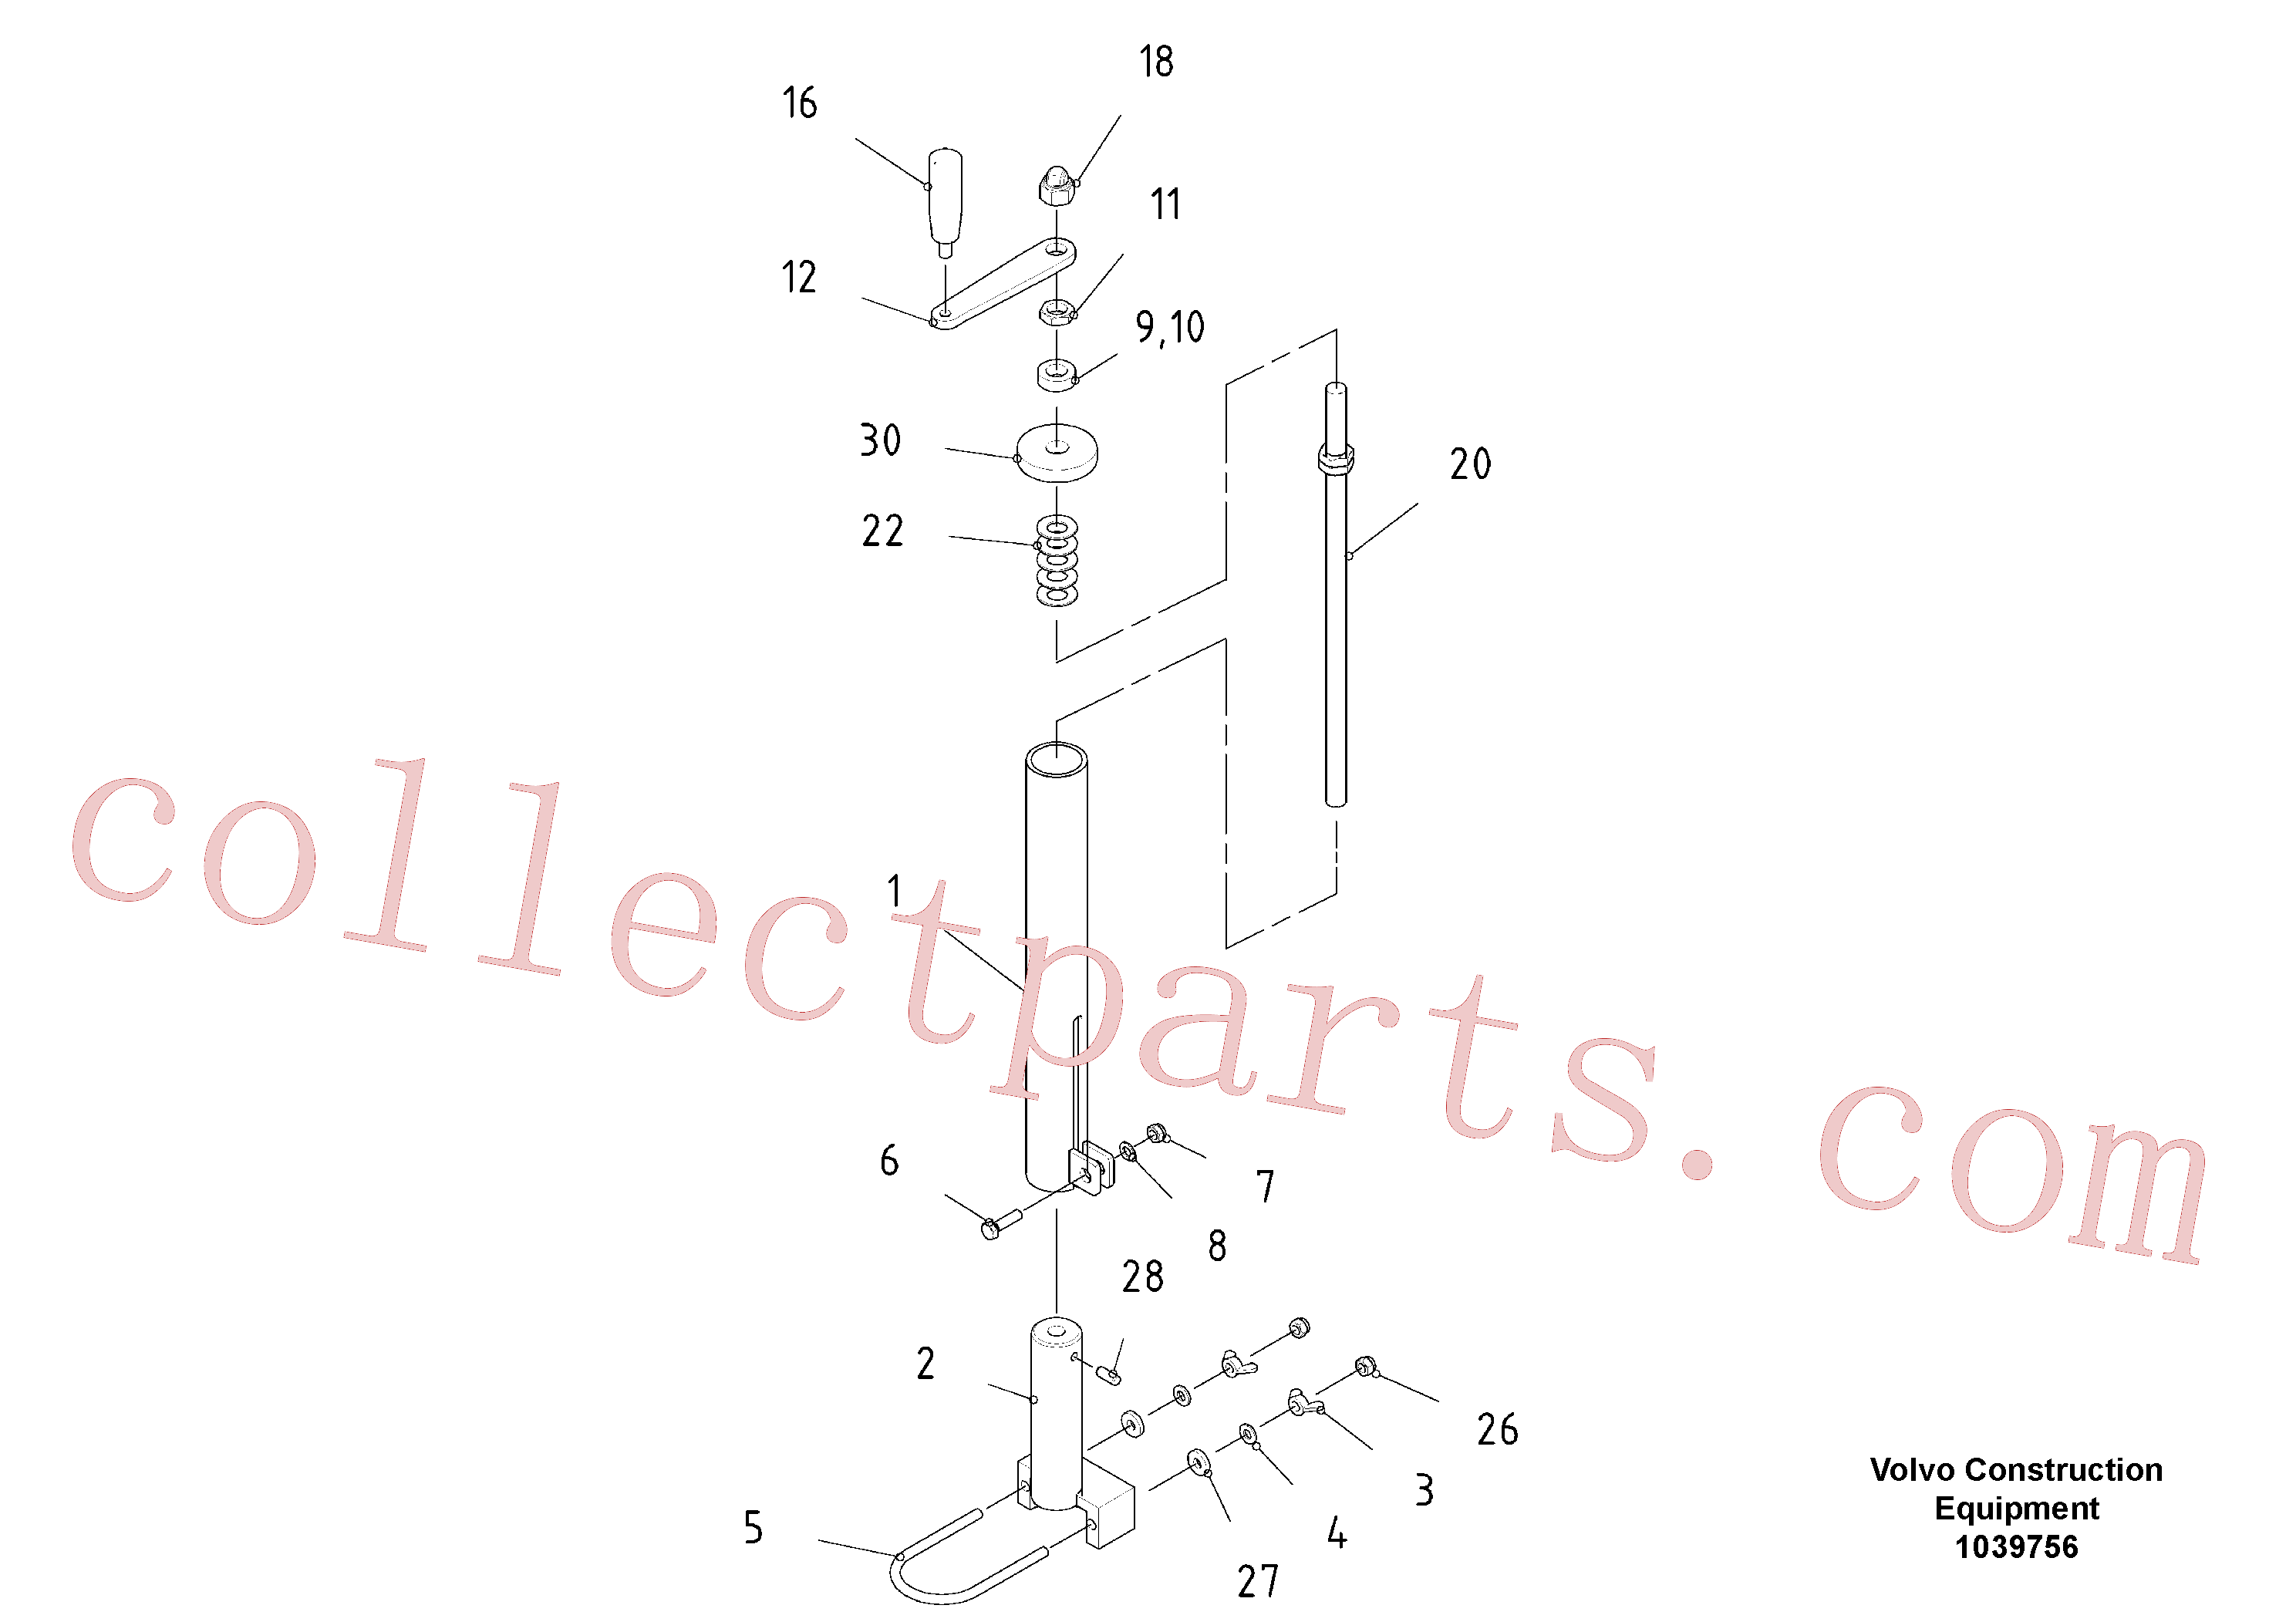 RM96712831 for Volvo Mechanical Control Assembly, Mechanical screed holder(1039756 assembly)